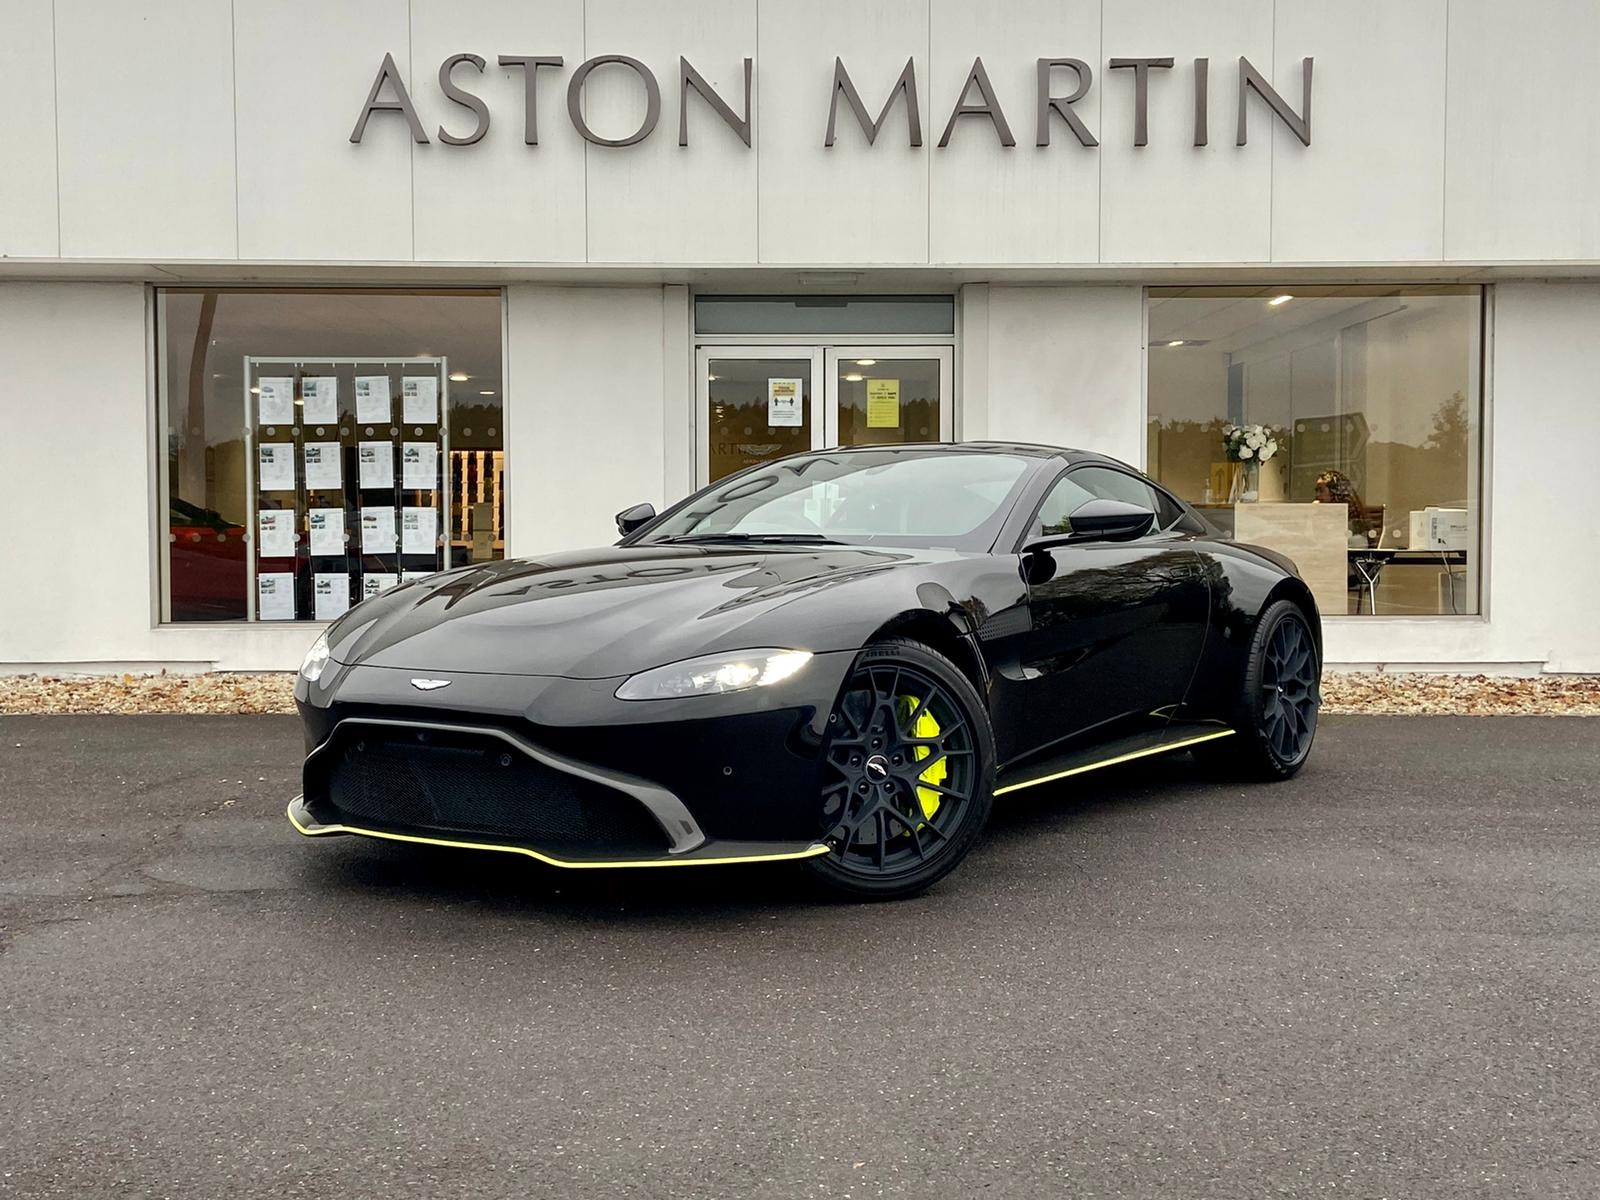 Aston Martin New Vantage AMR Hero Edition 1 of 200 4.0 2 door Coupe (2020)